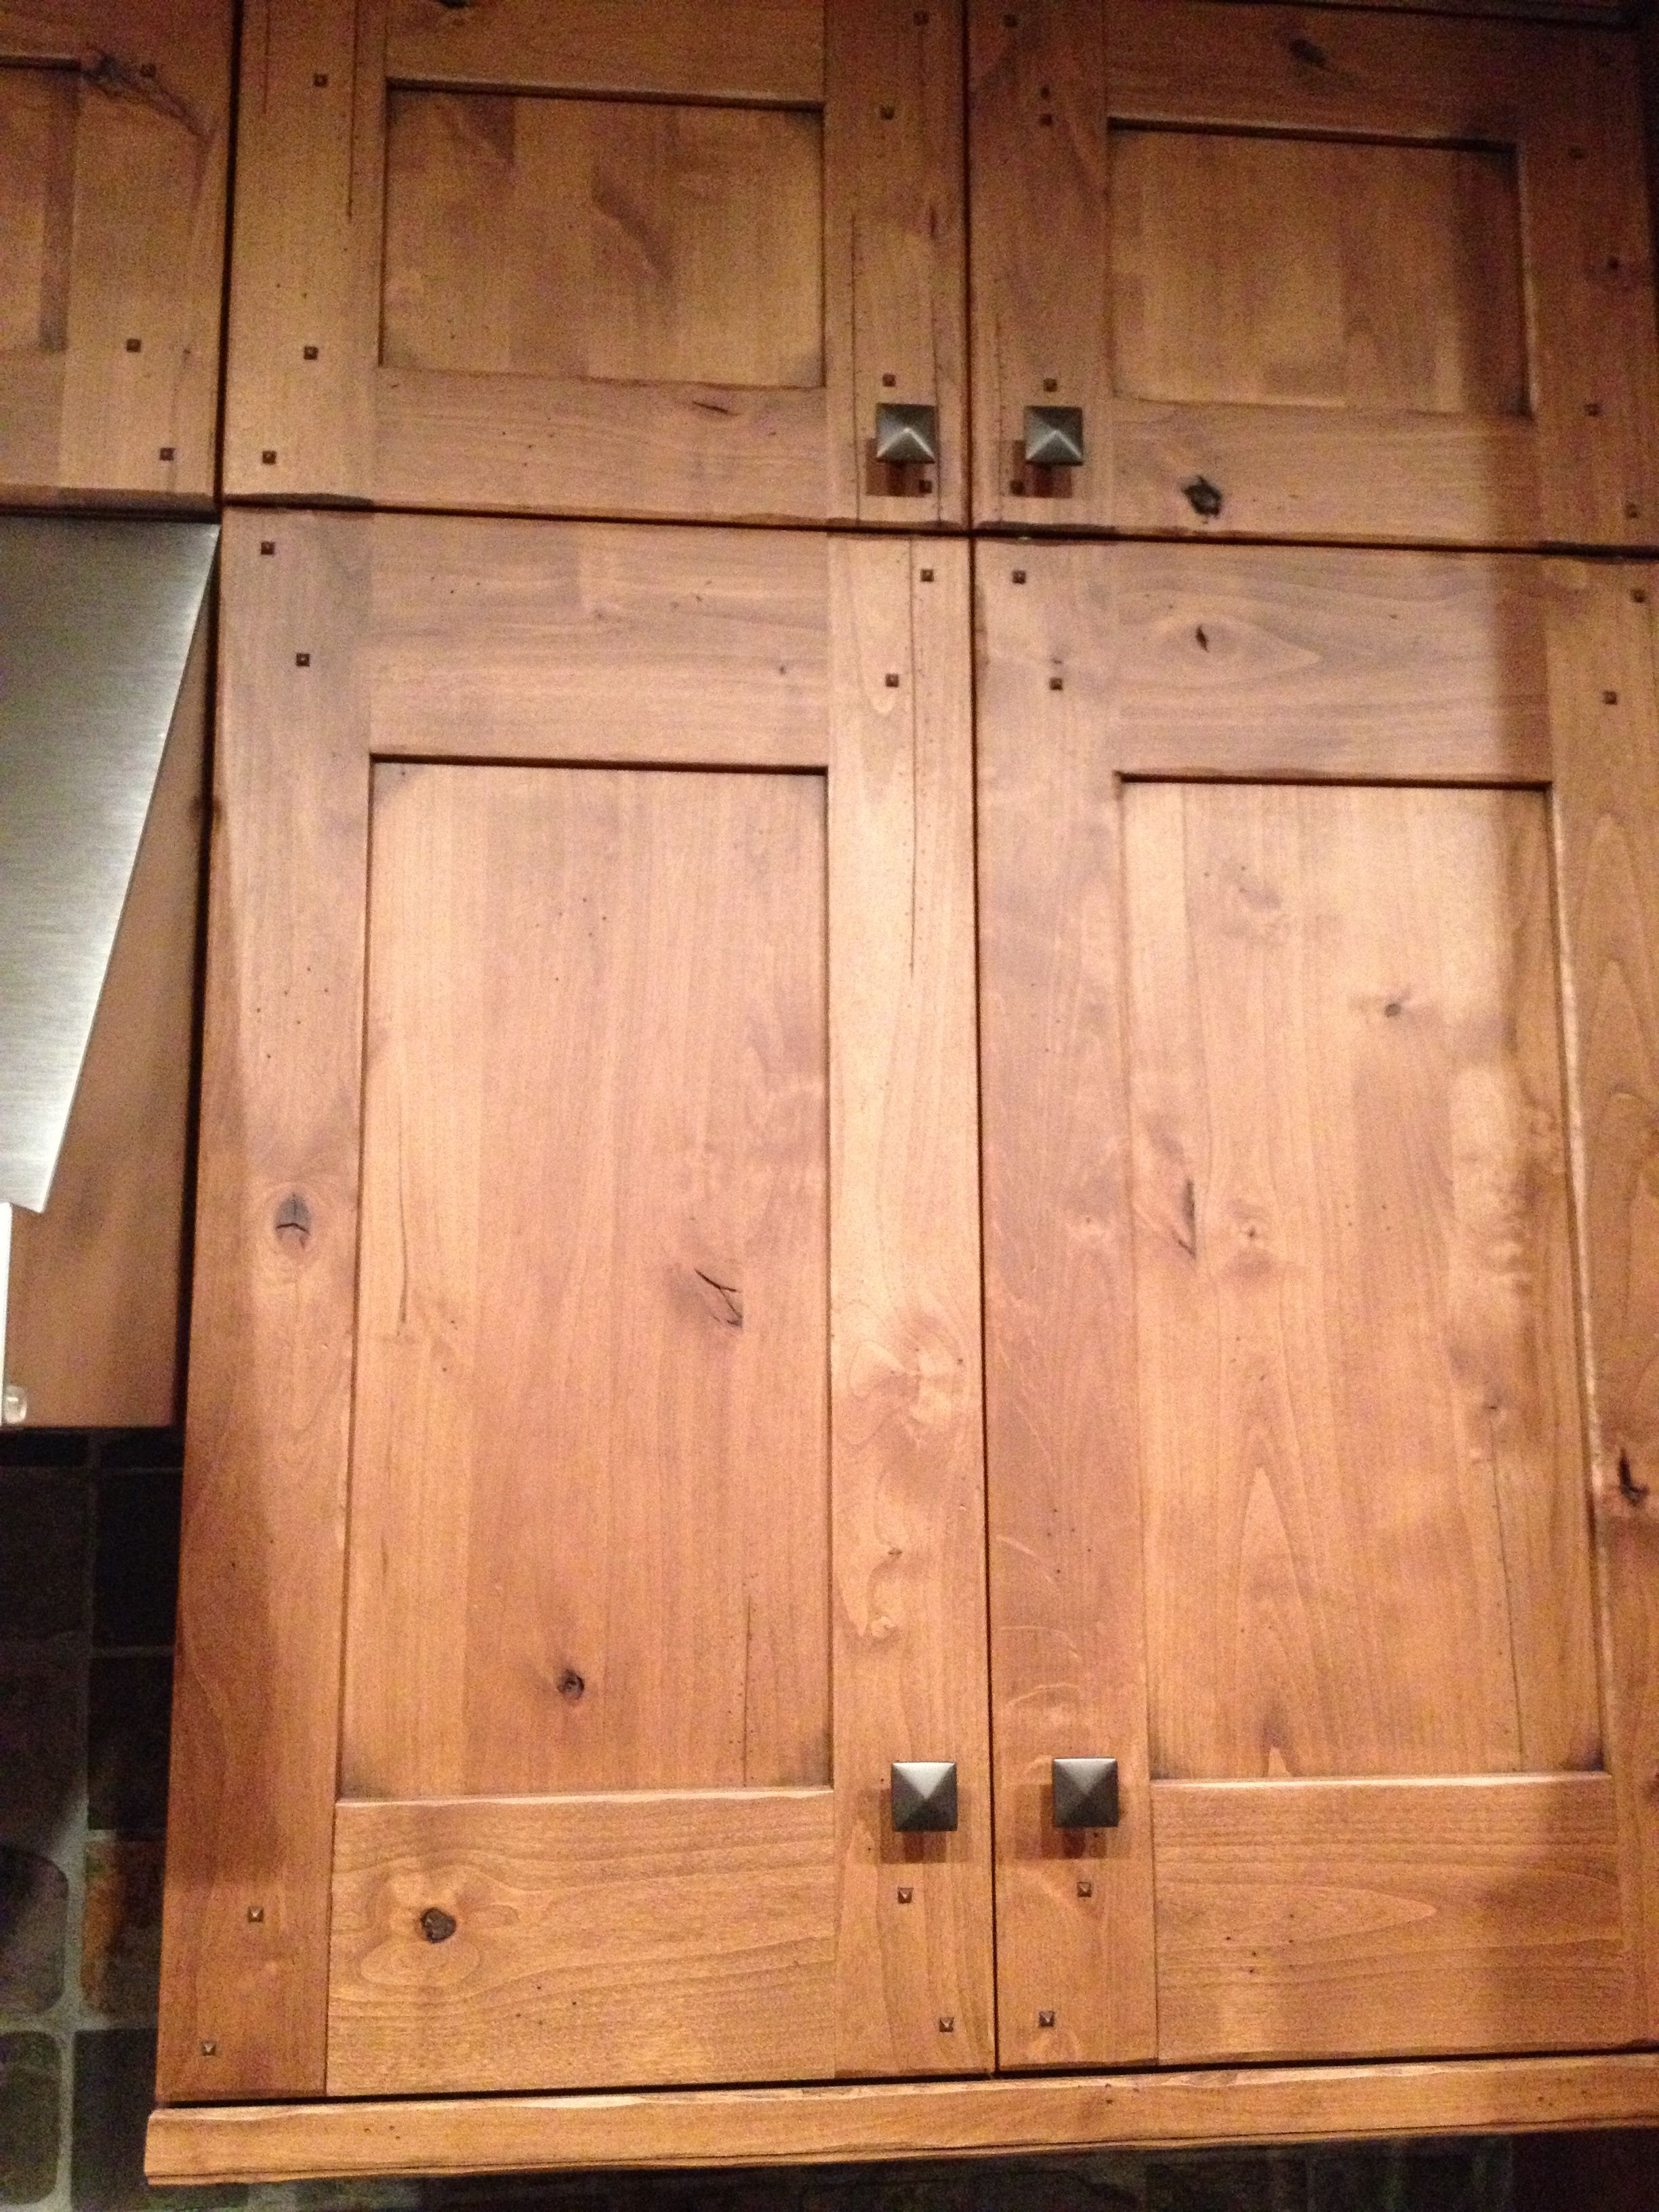 Genial Note To Self:: These Are The Cabinetry Doors We Liked From Ridout ~ Corner  Detailing With Square Doweling / Fake The Look With Square Upholstery Tacks  ...